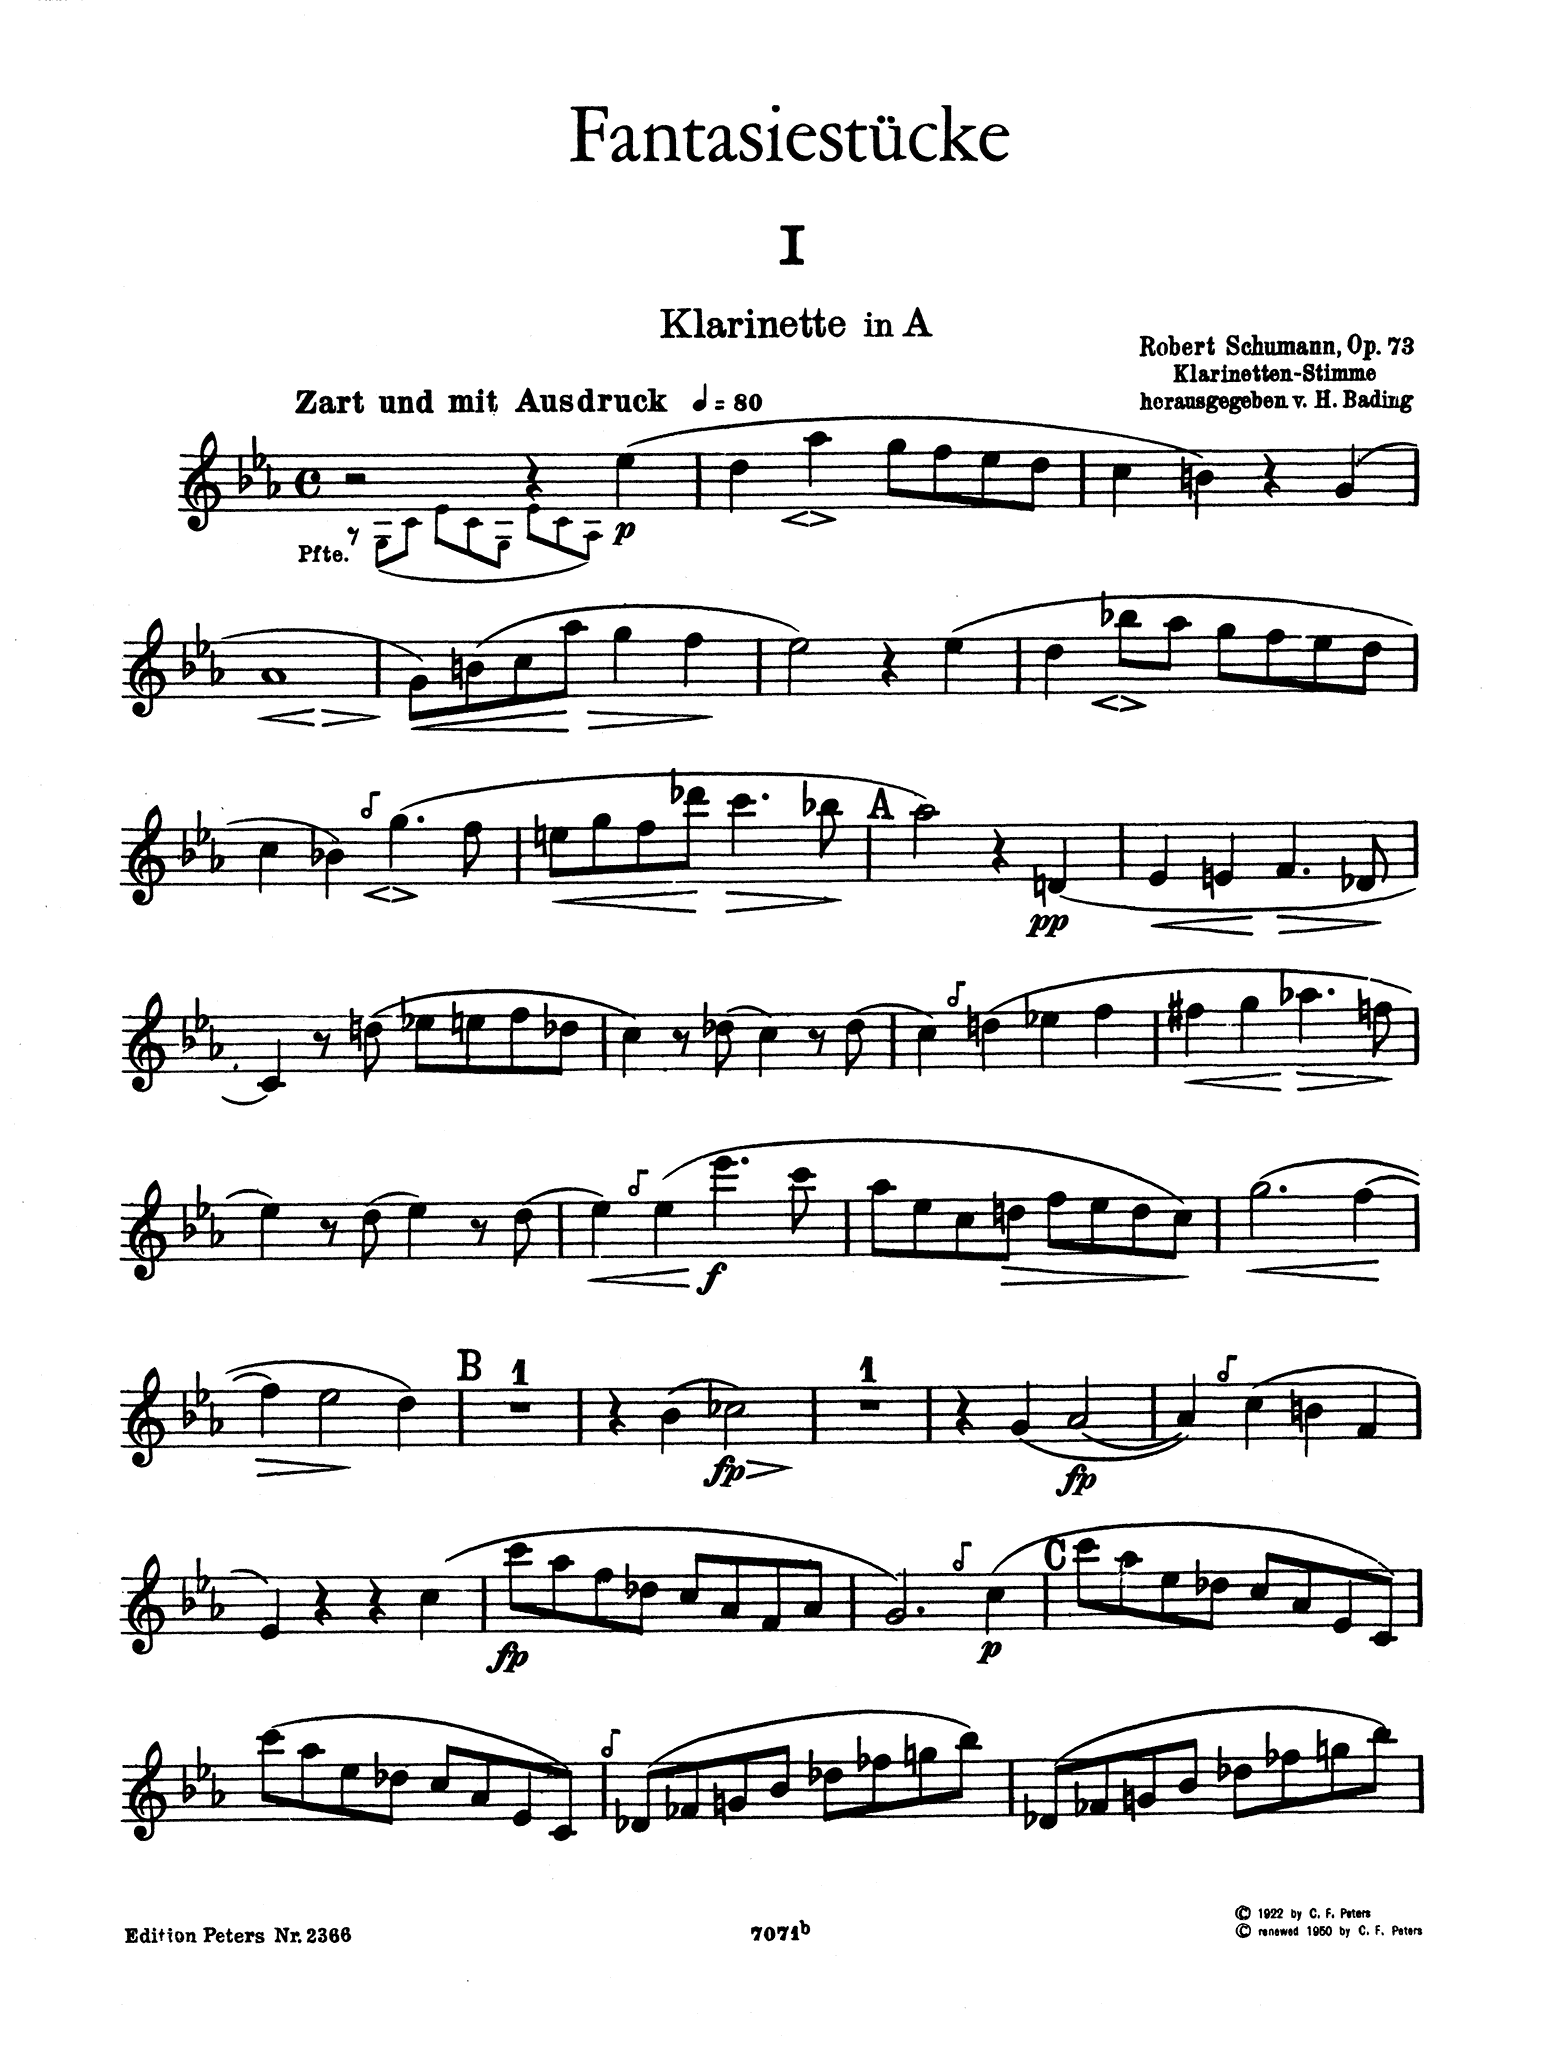 Fantasiestücke, Op. 73 A Clarinet part